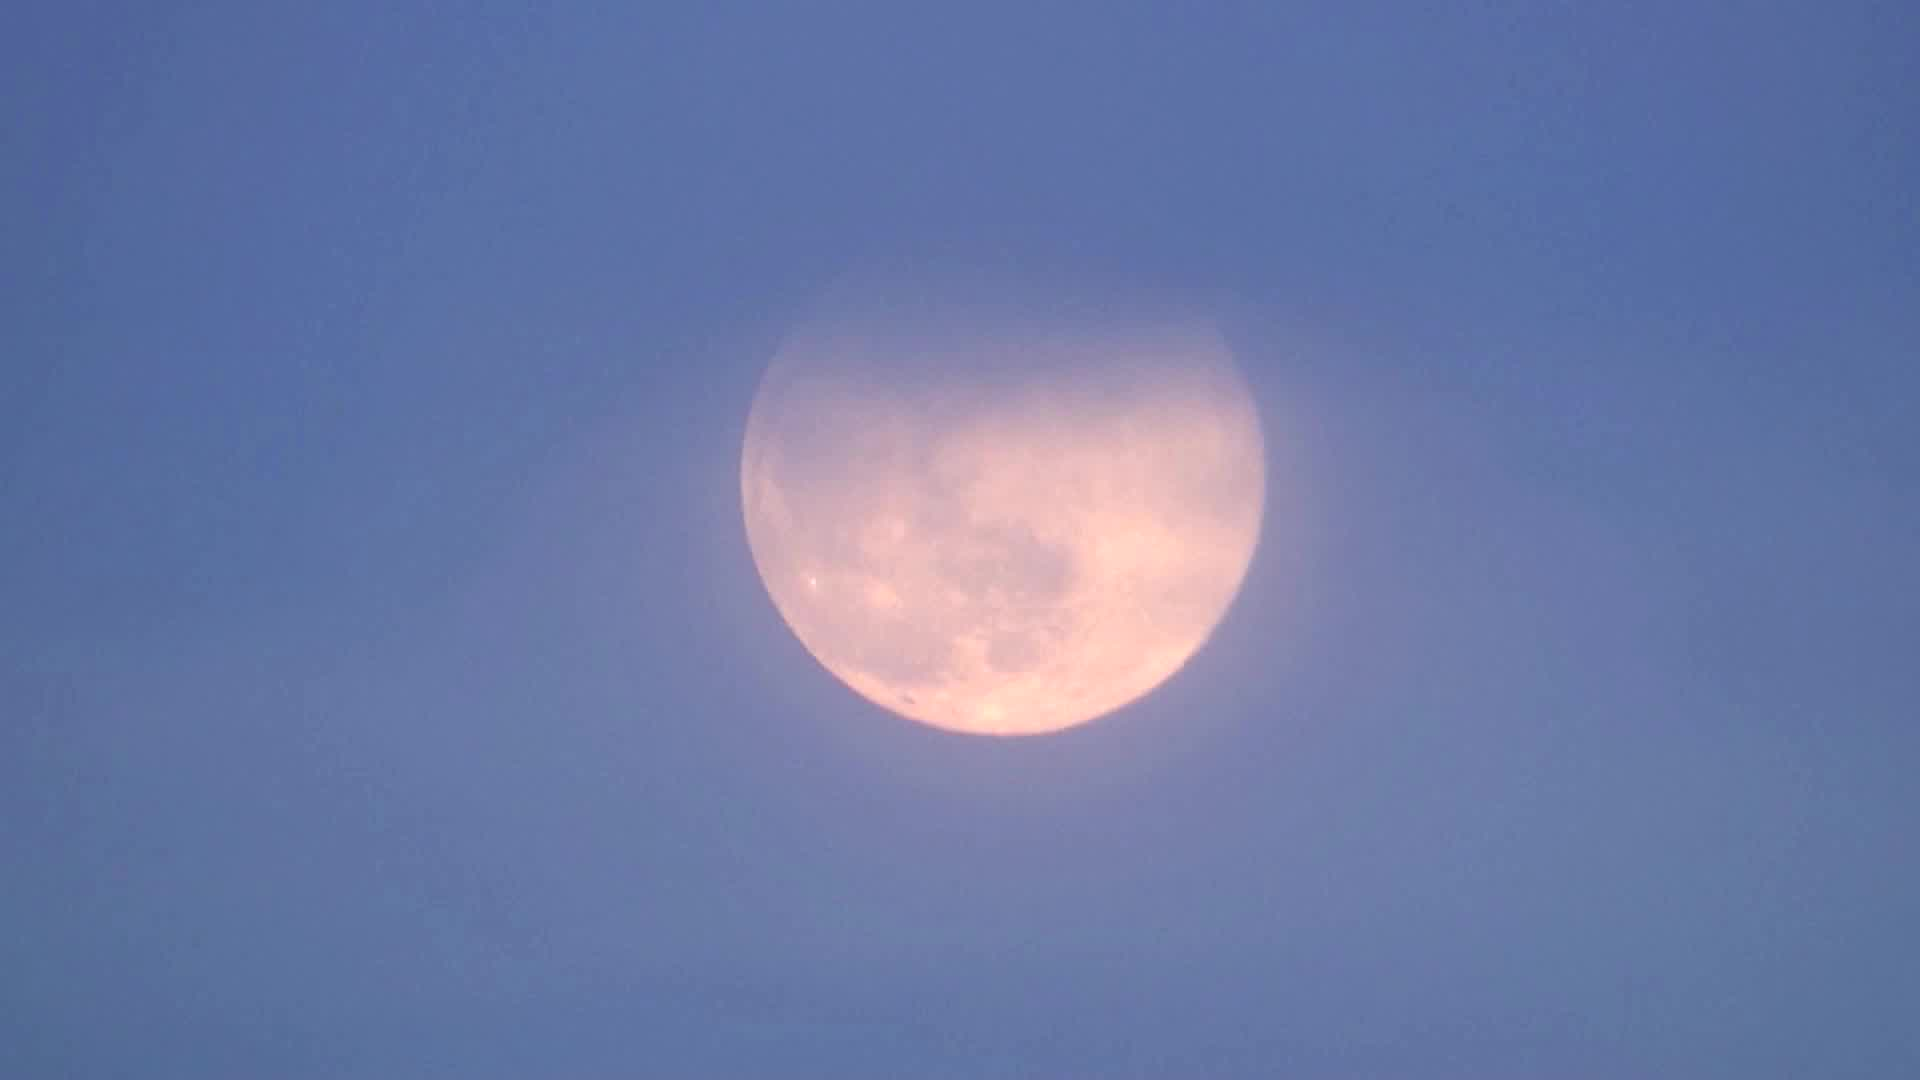 July 4th Brings The Buck Full Moon And An Eclipse